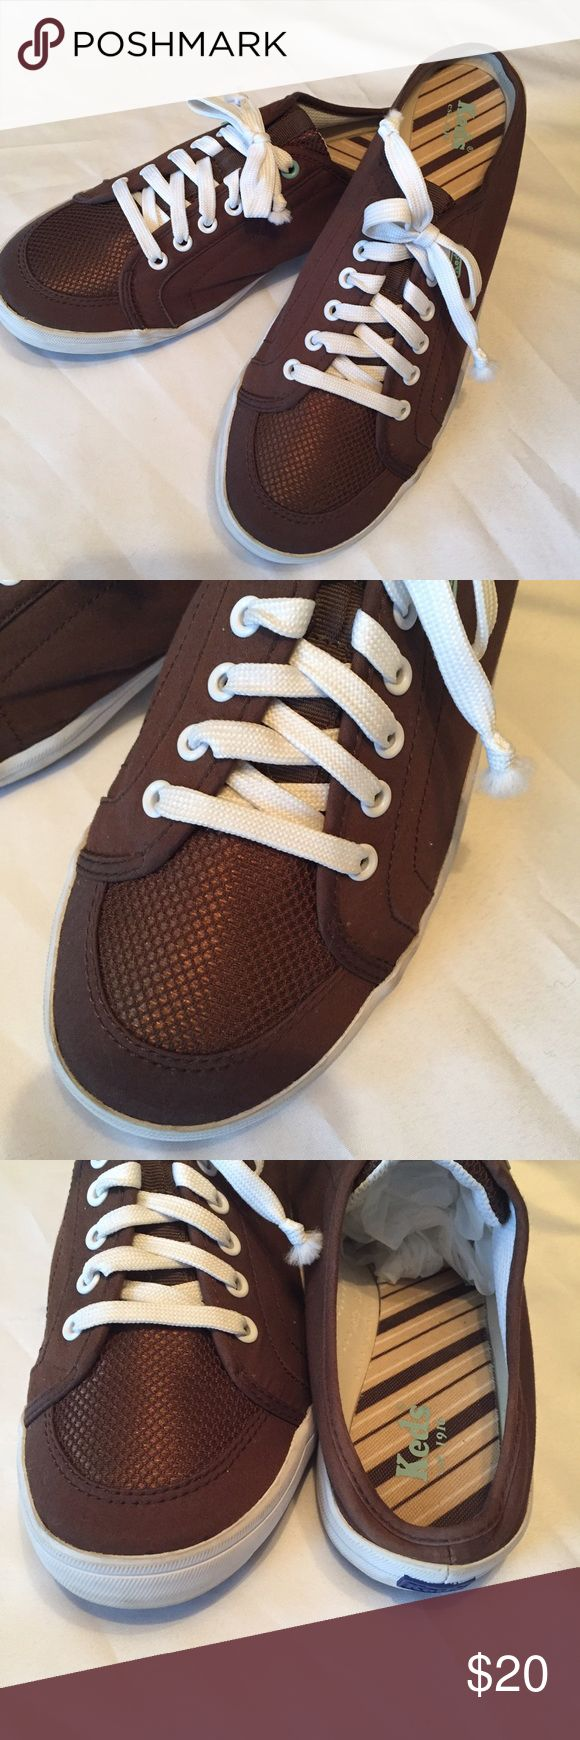 Keds slip on tennis shoes 10 Cute Keds brown slip on with small amount of teal details, size 10, great condition no stains or wear. Keds Shoes Mules & Clogs